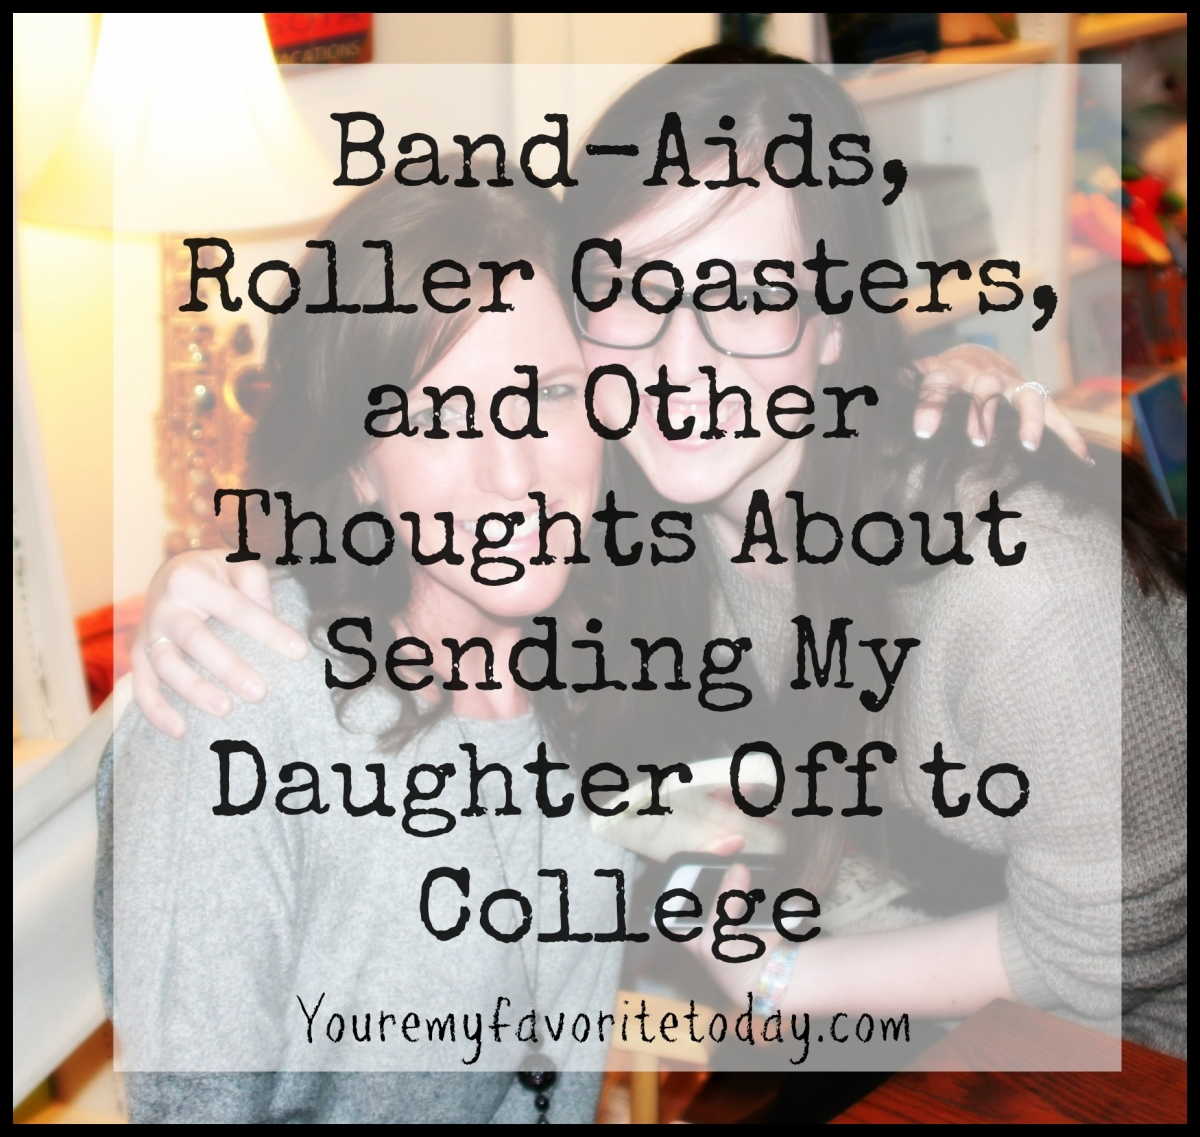 Band-aids, roller coasters, and other thoughts about sending